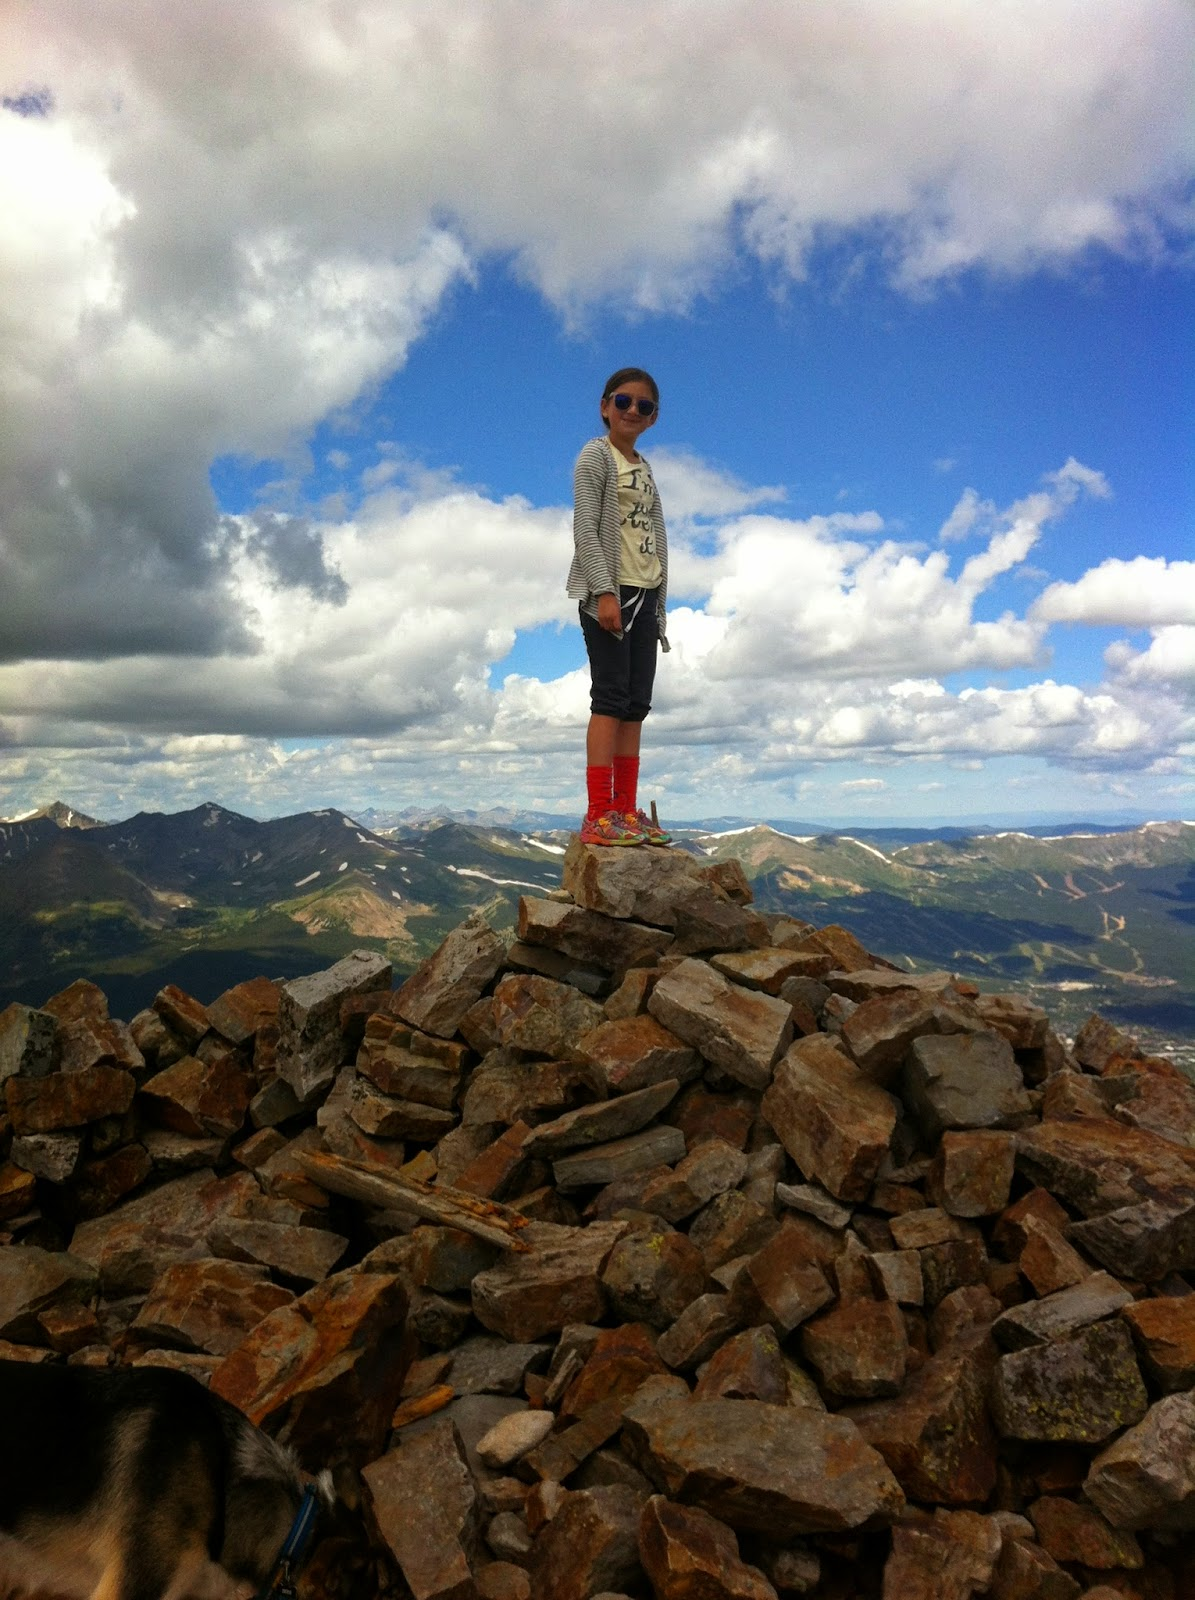 Bald Mountain, Breckenridge, Colorado